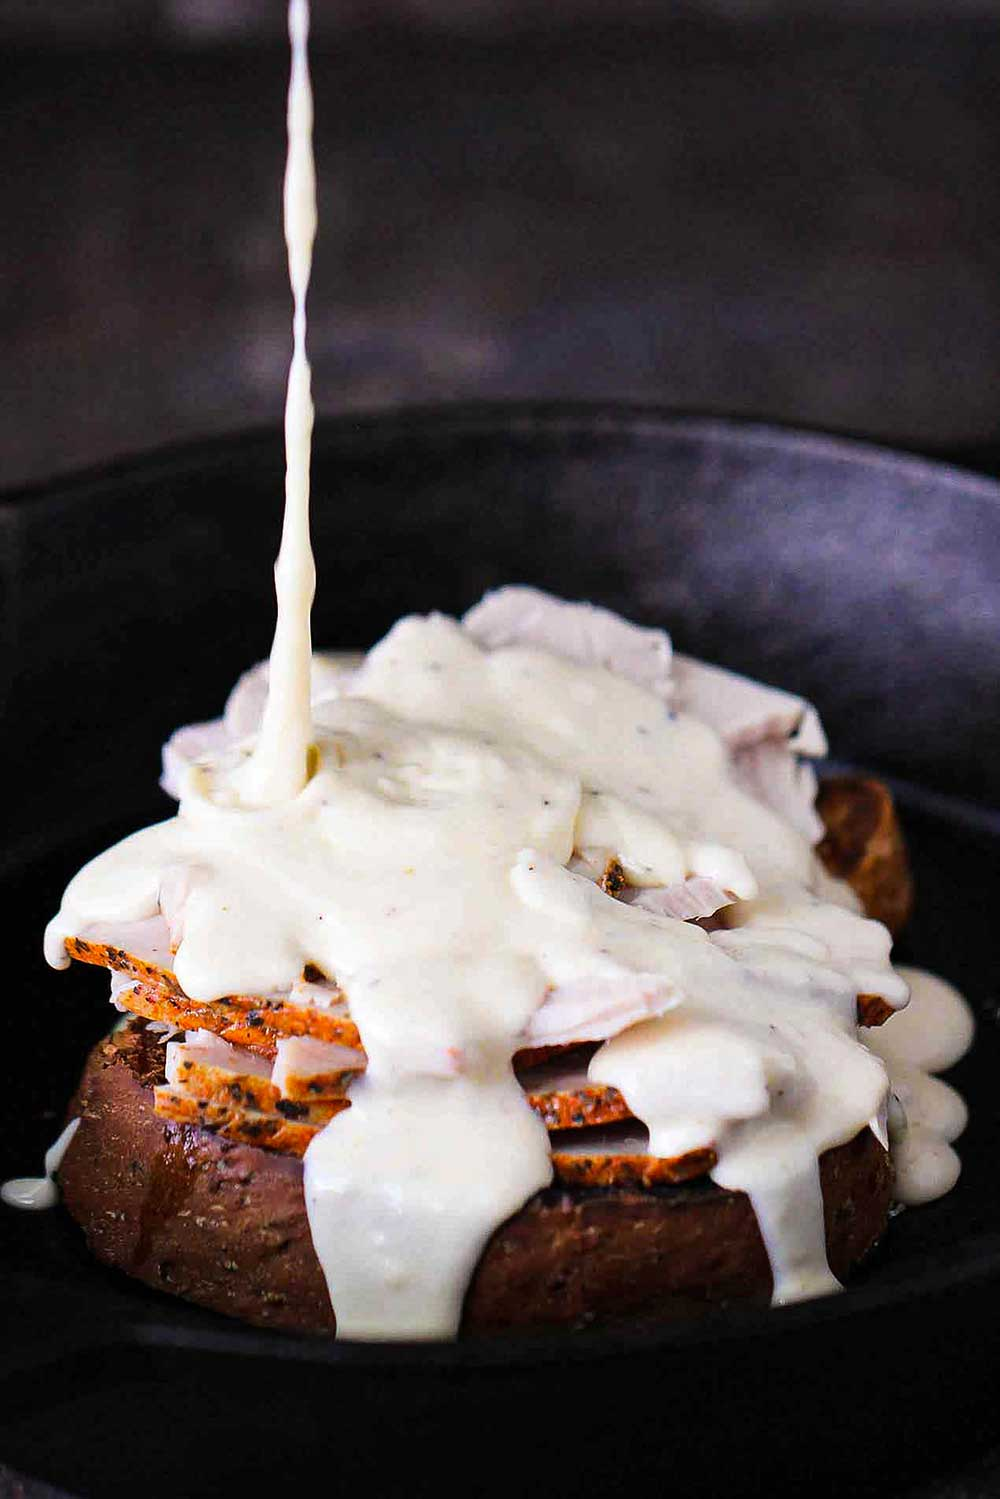 A cast iron skillet filled with a Kentucky hot brown with Mornay sauce being poured over the top.